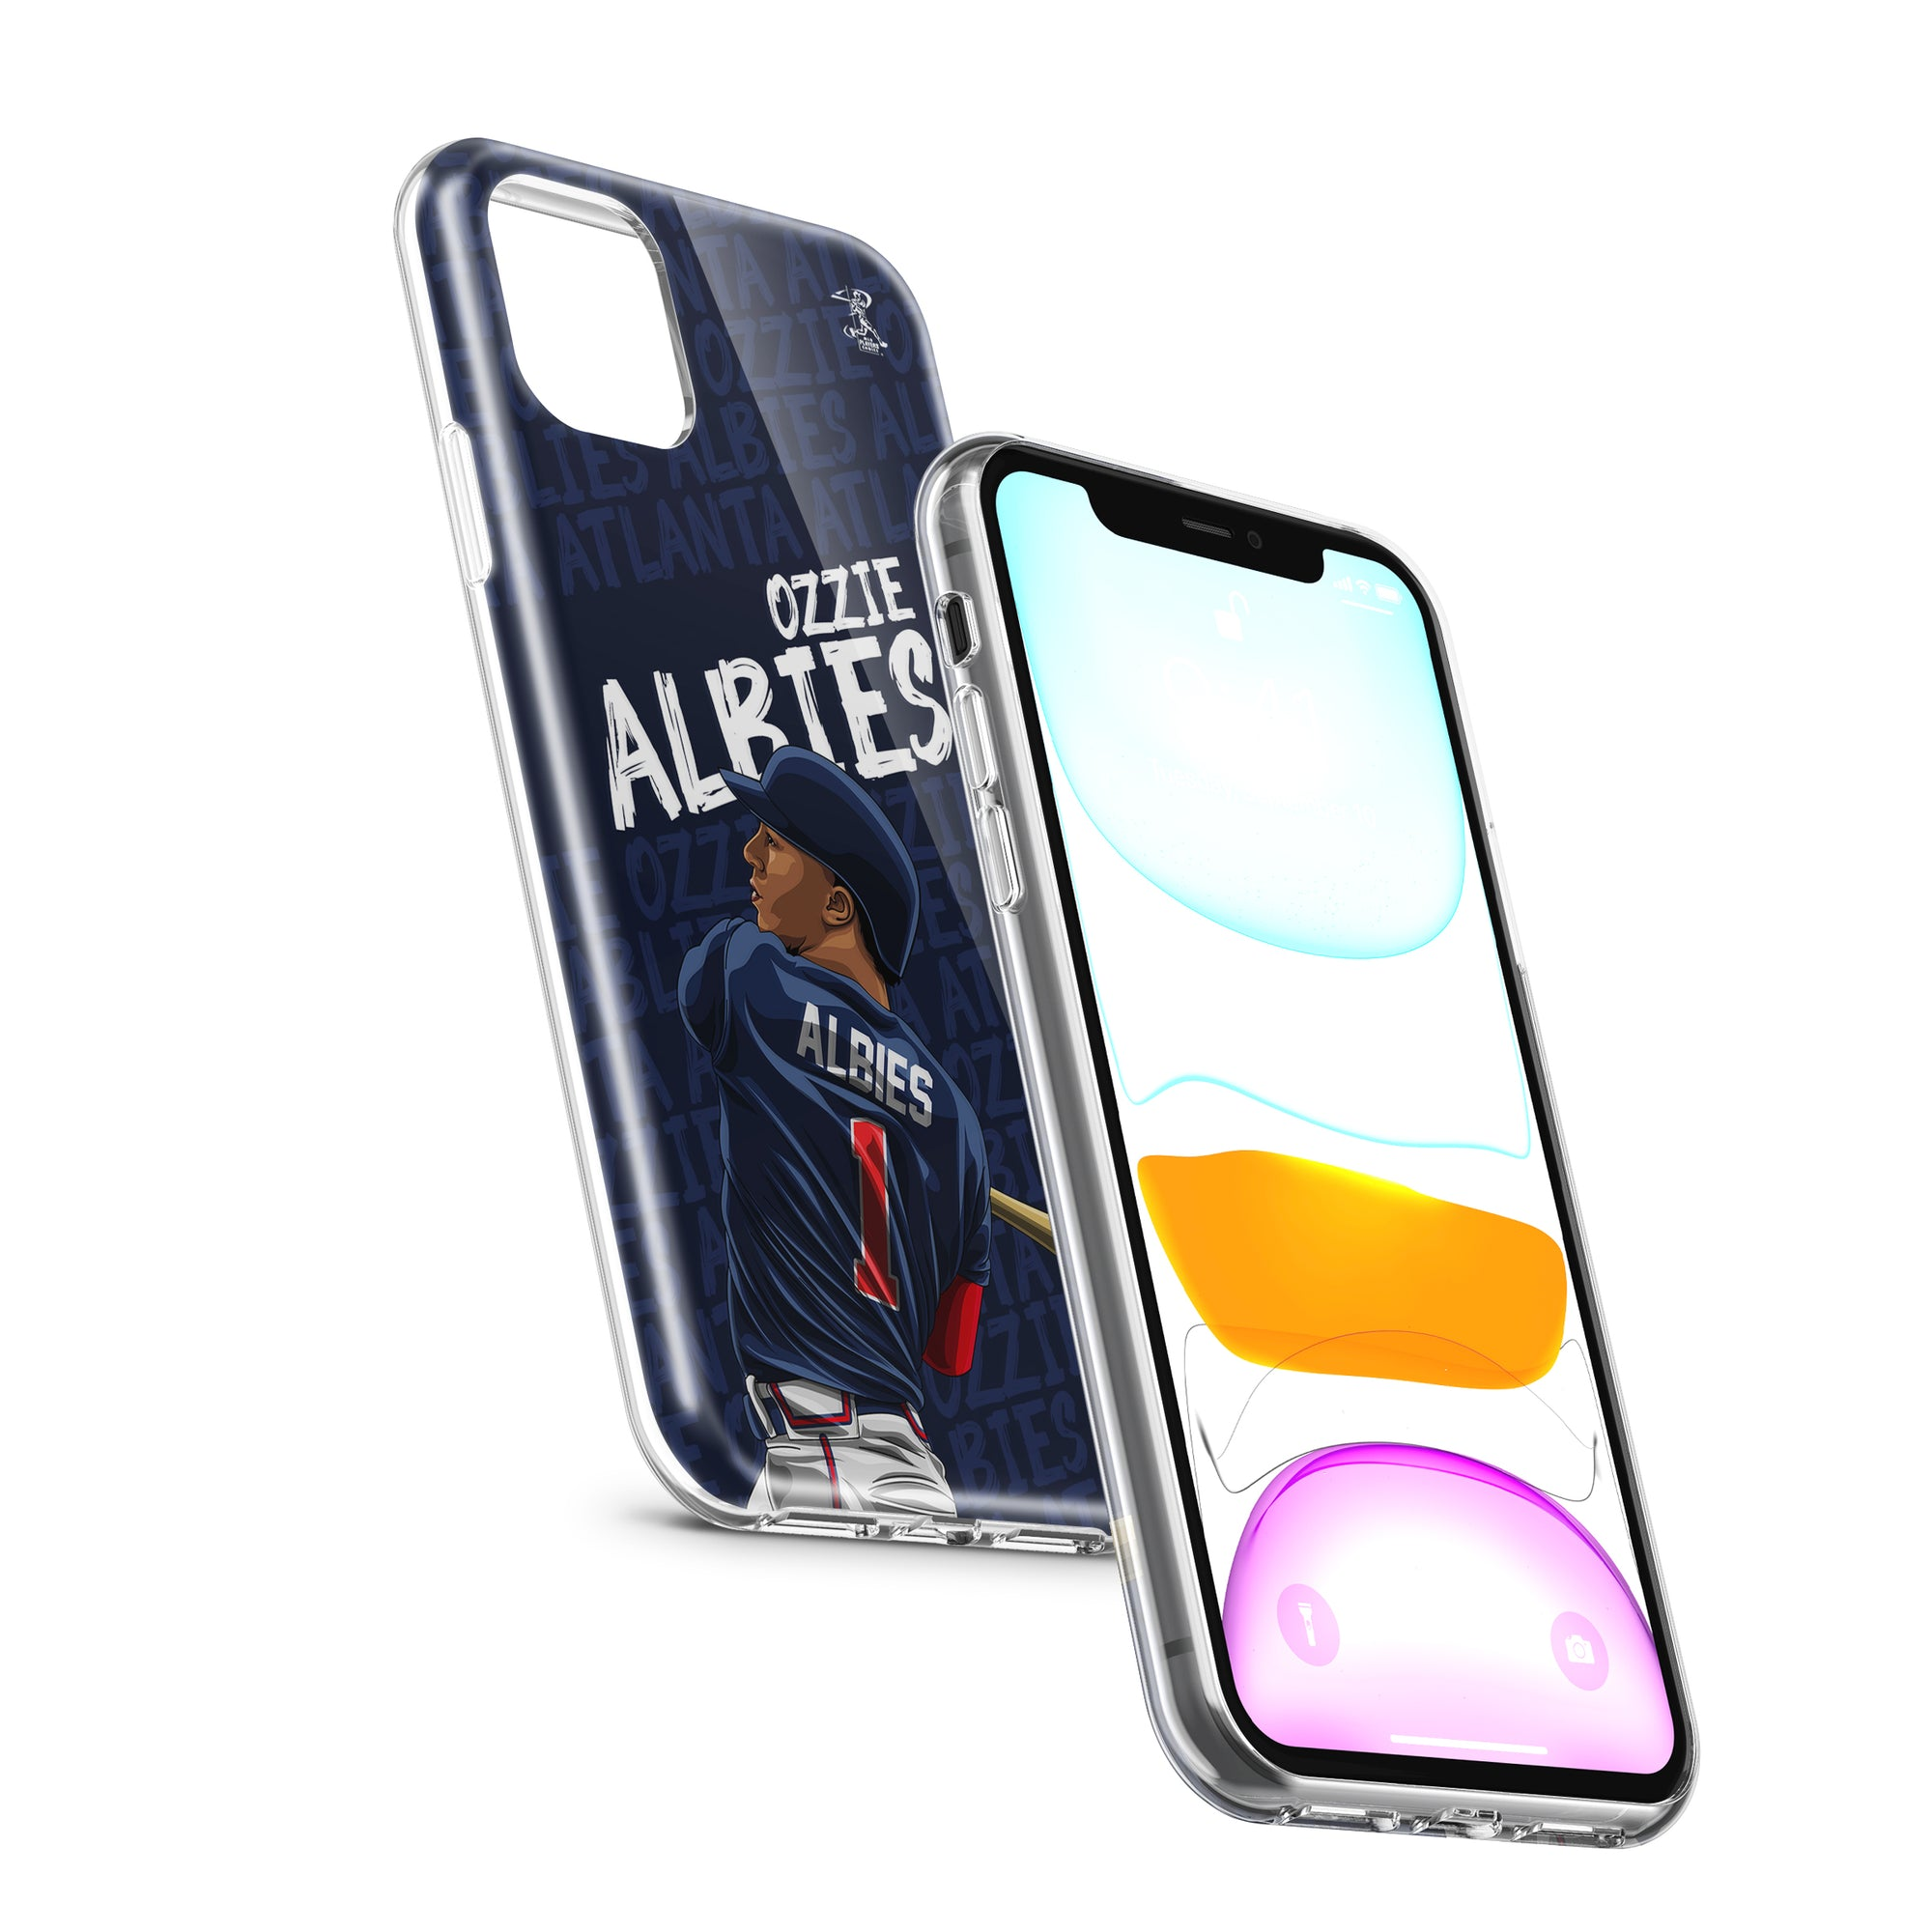 Albies Star Series 2.0 Case